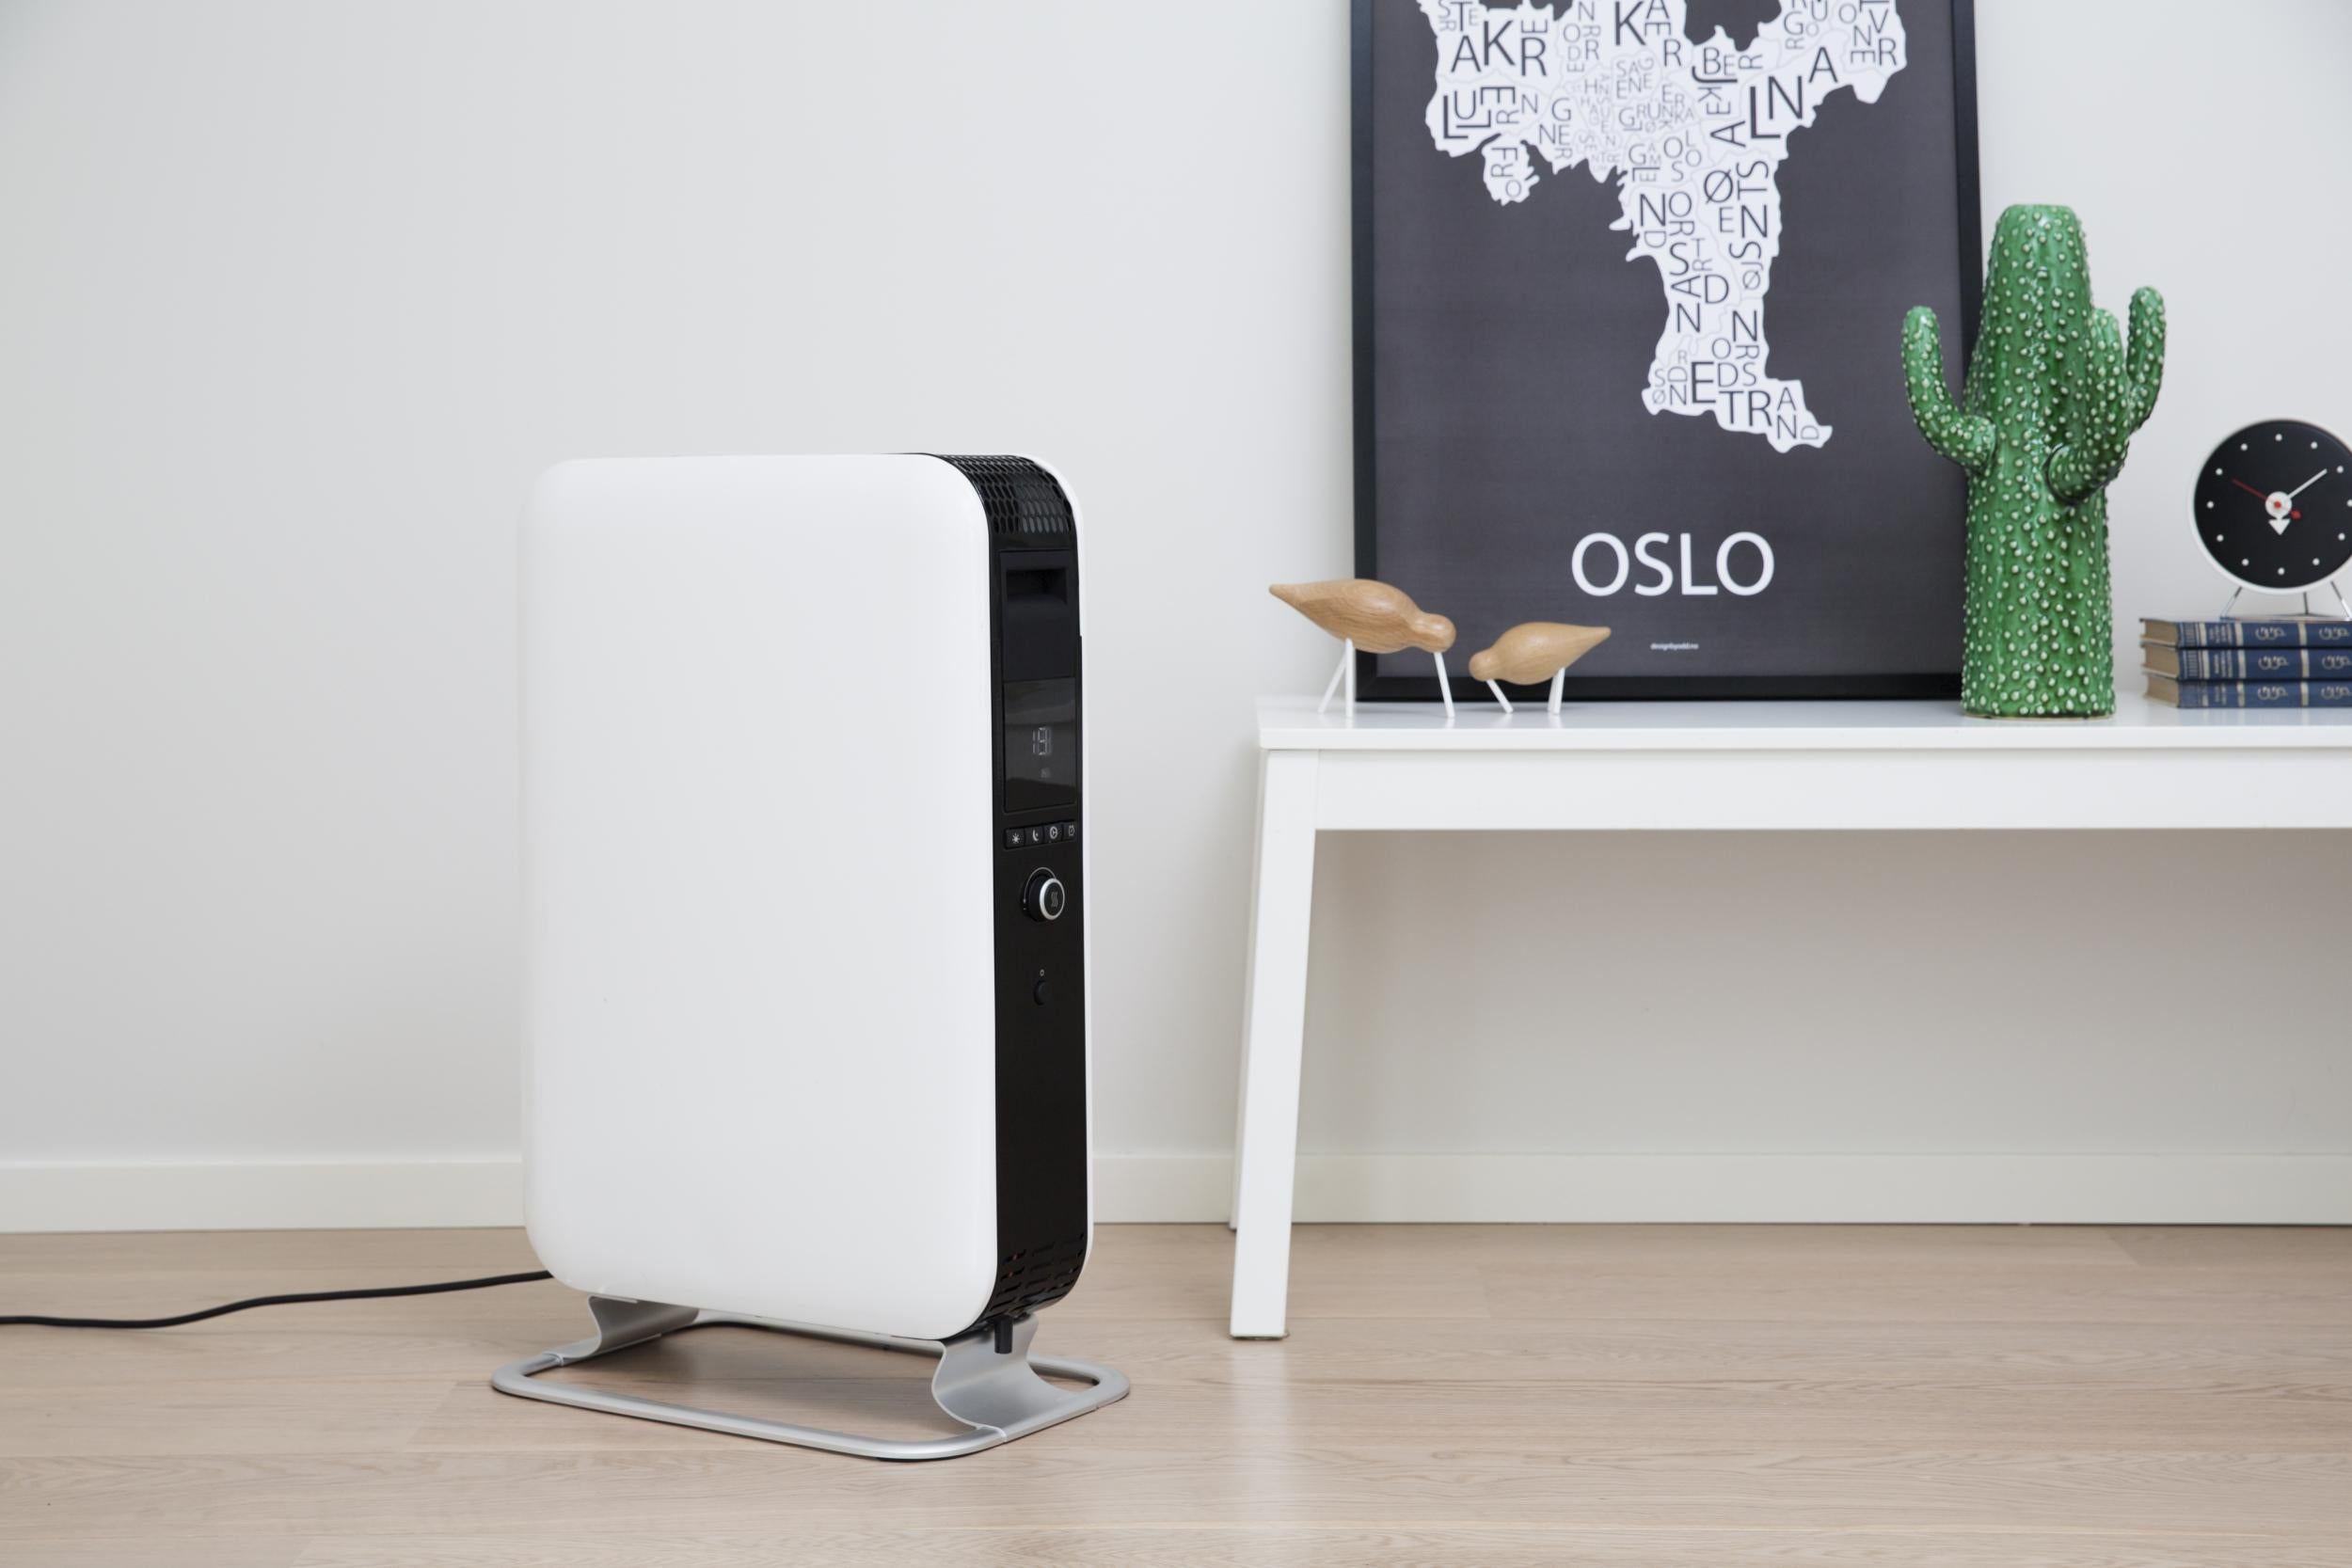 9 Best Portable Heaters The Independent